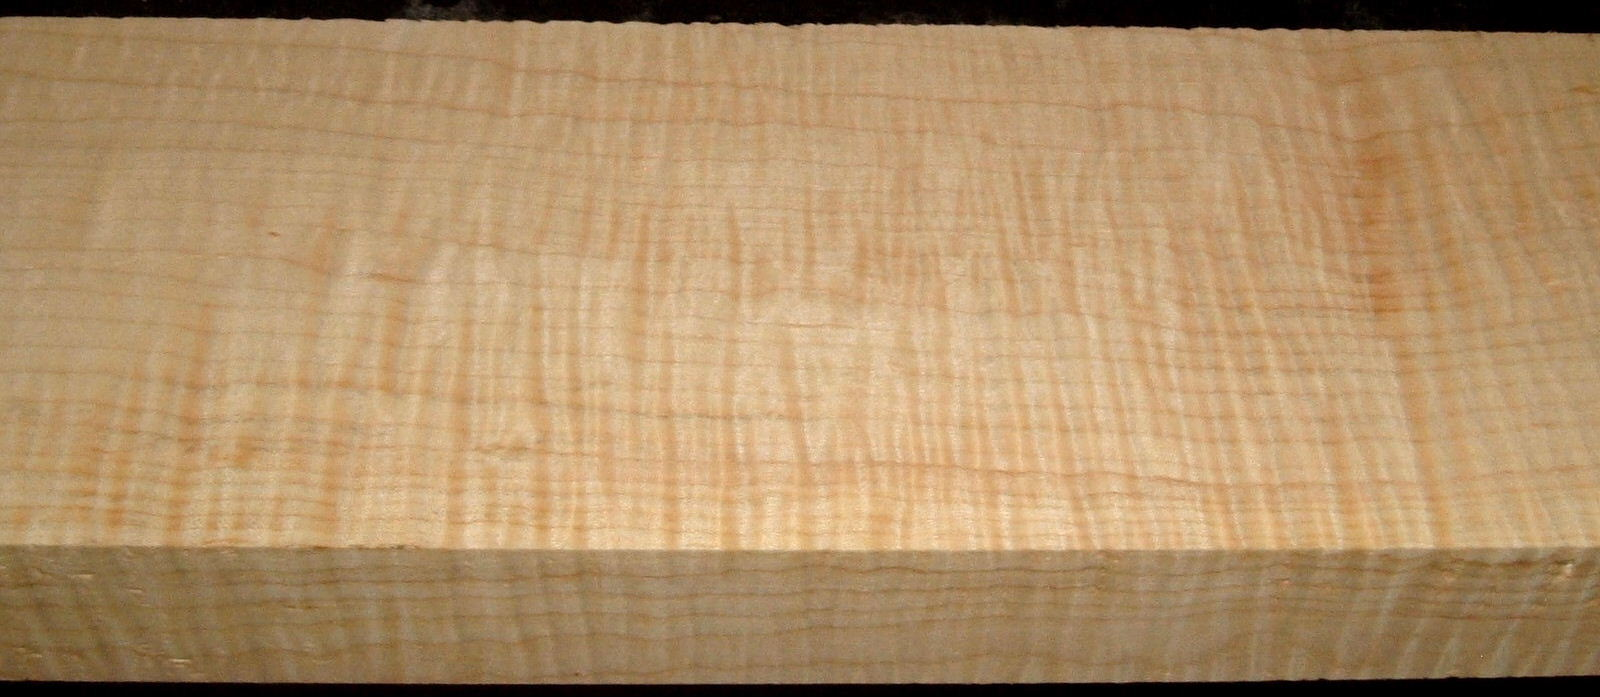 QS2001-1, 1-1/2x4-3/8x32, Quartersawn Curly Maple